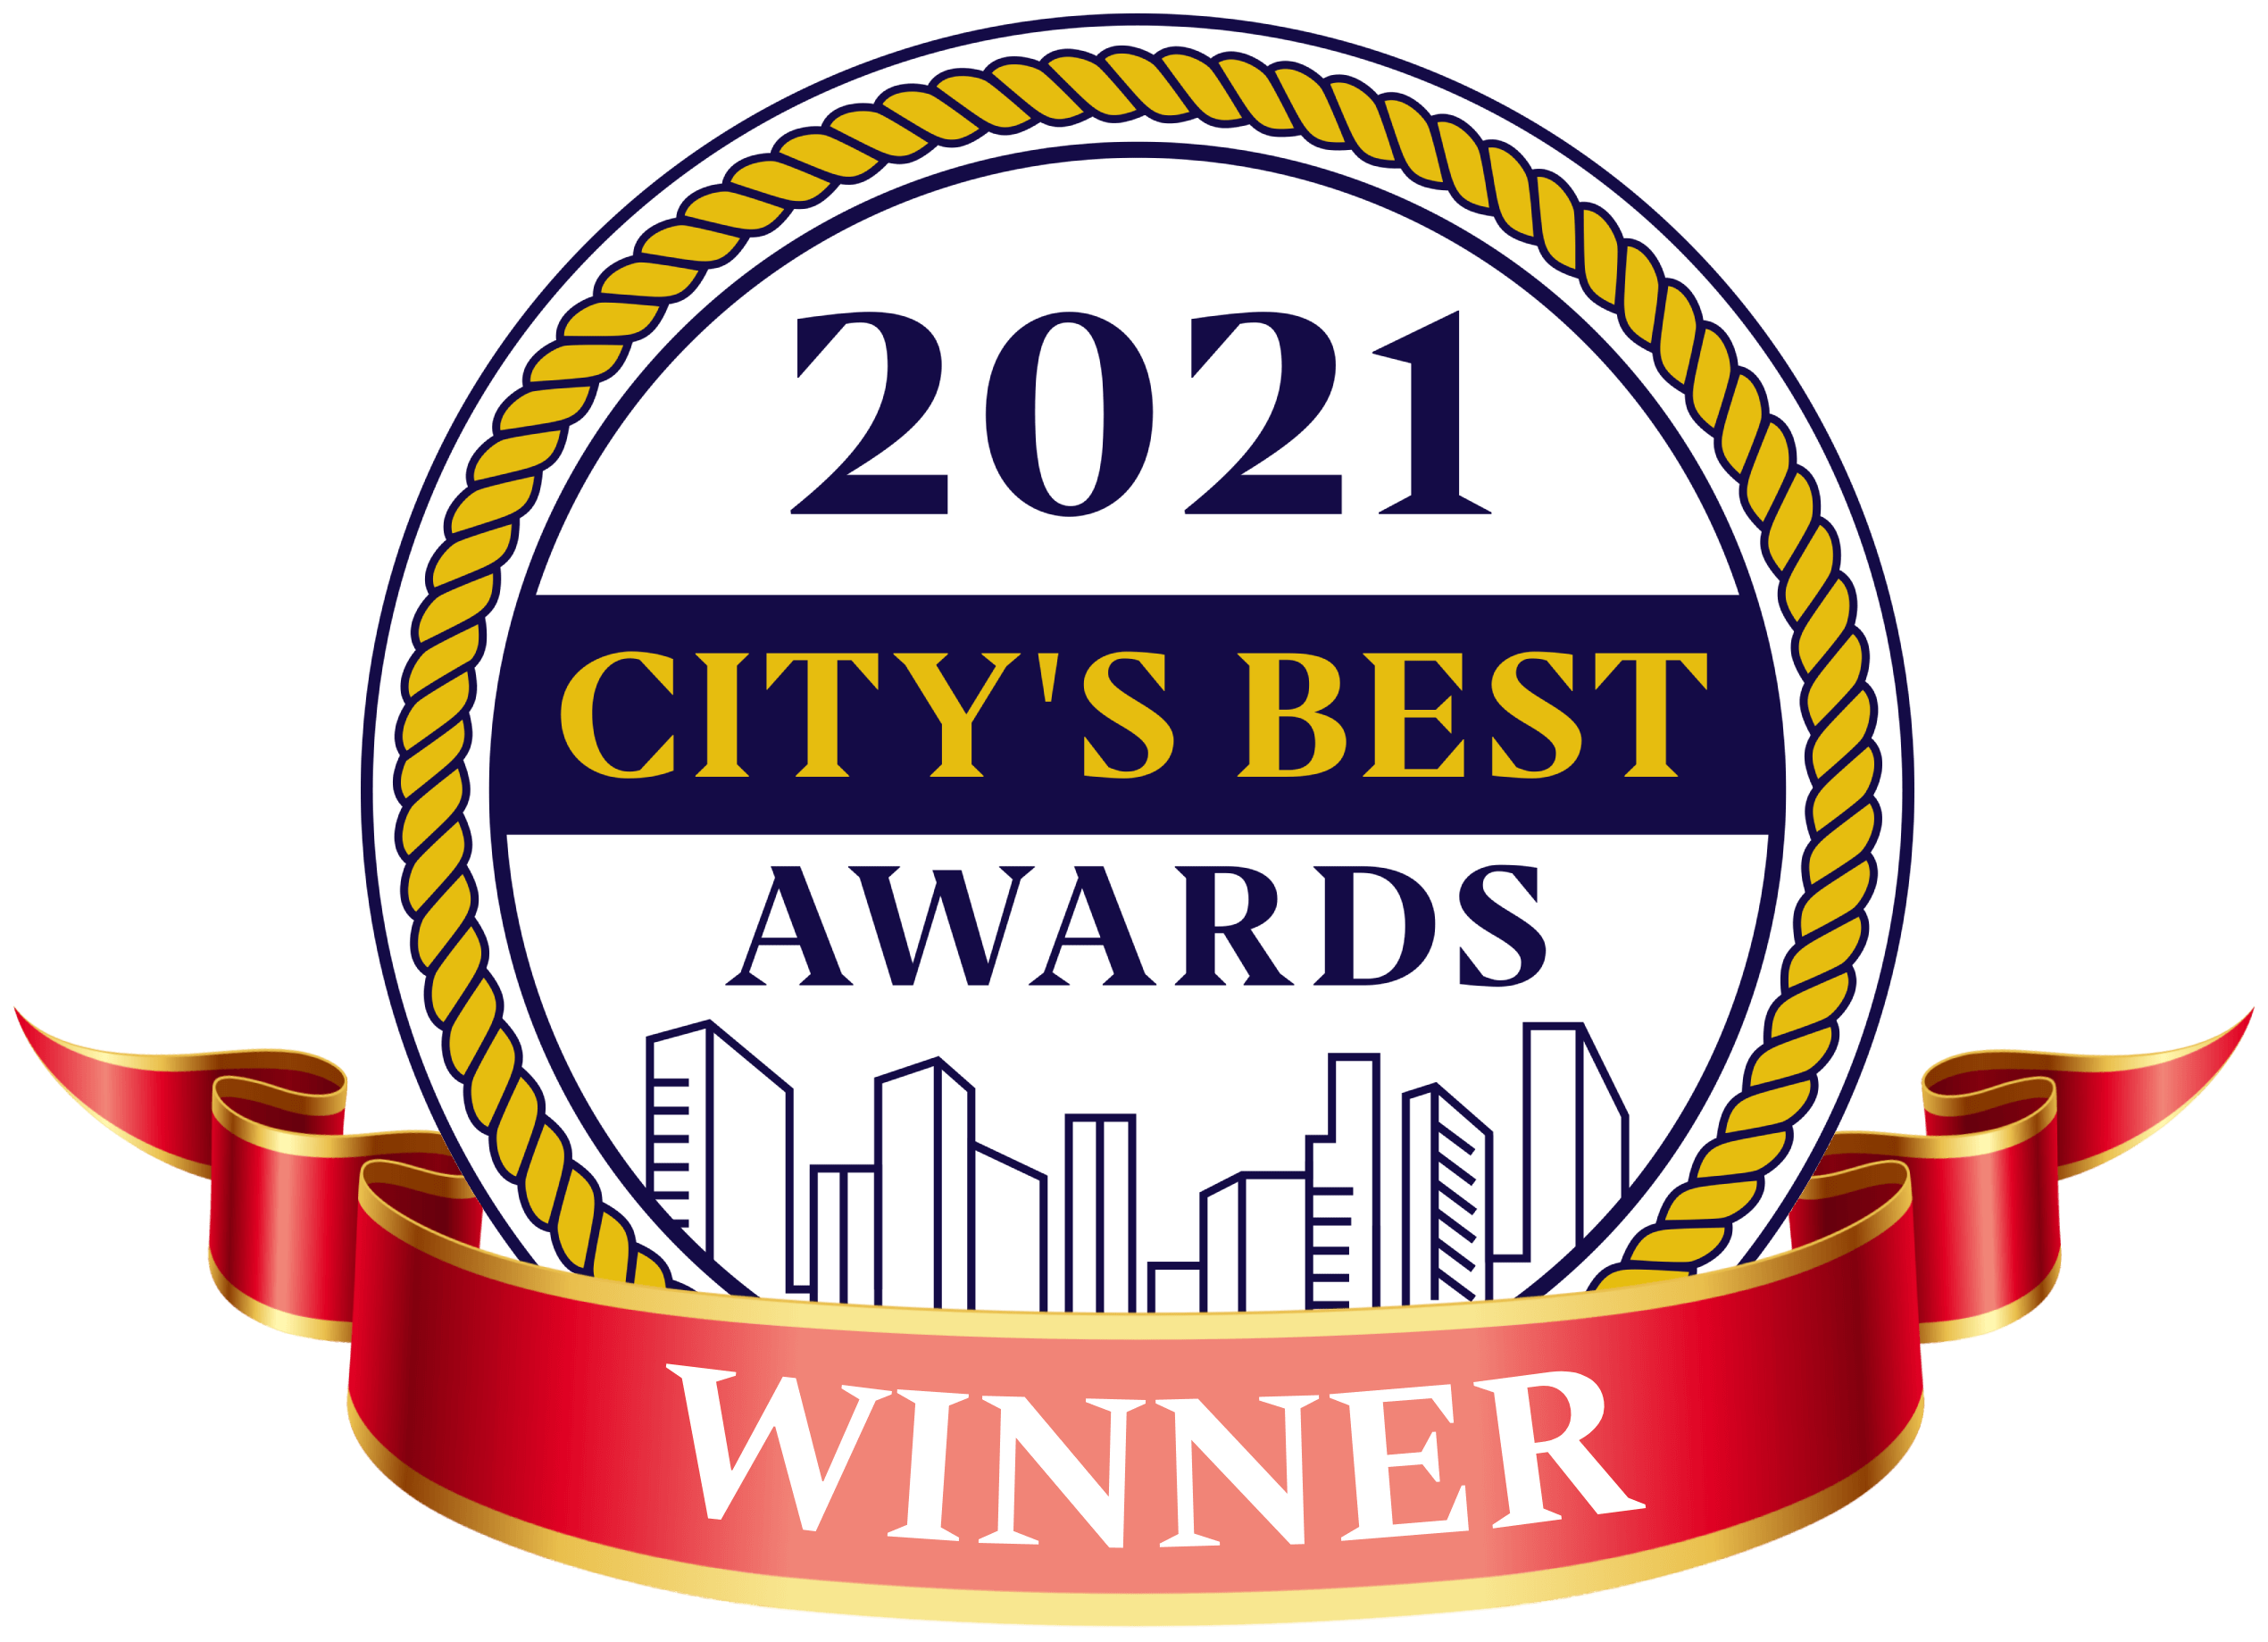 Find me on City's Best Awards